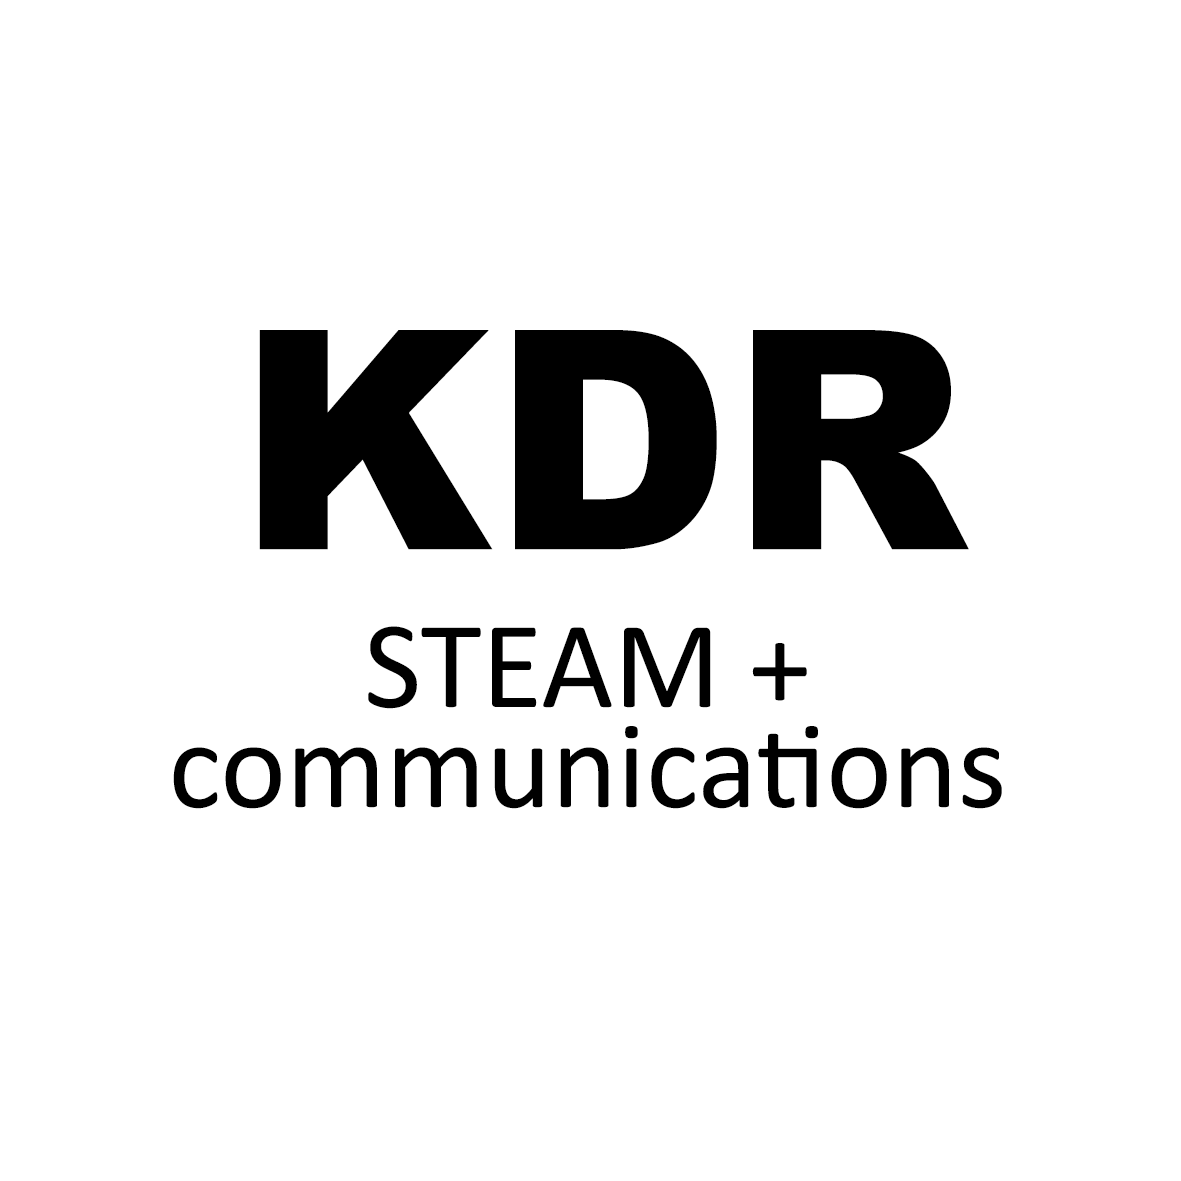 KDR: STEAM + Communications